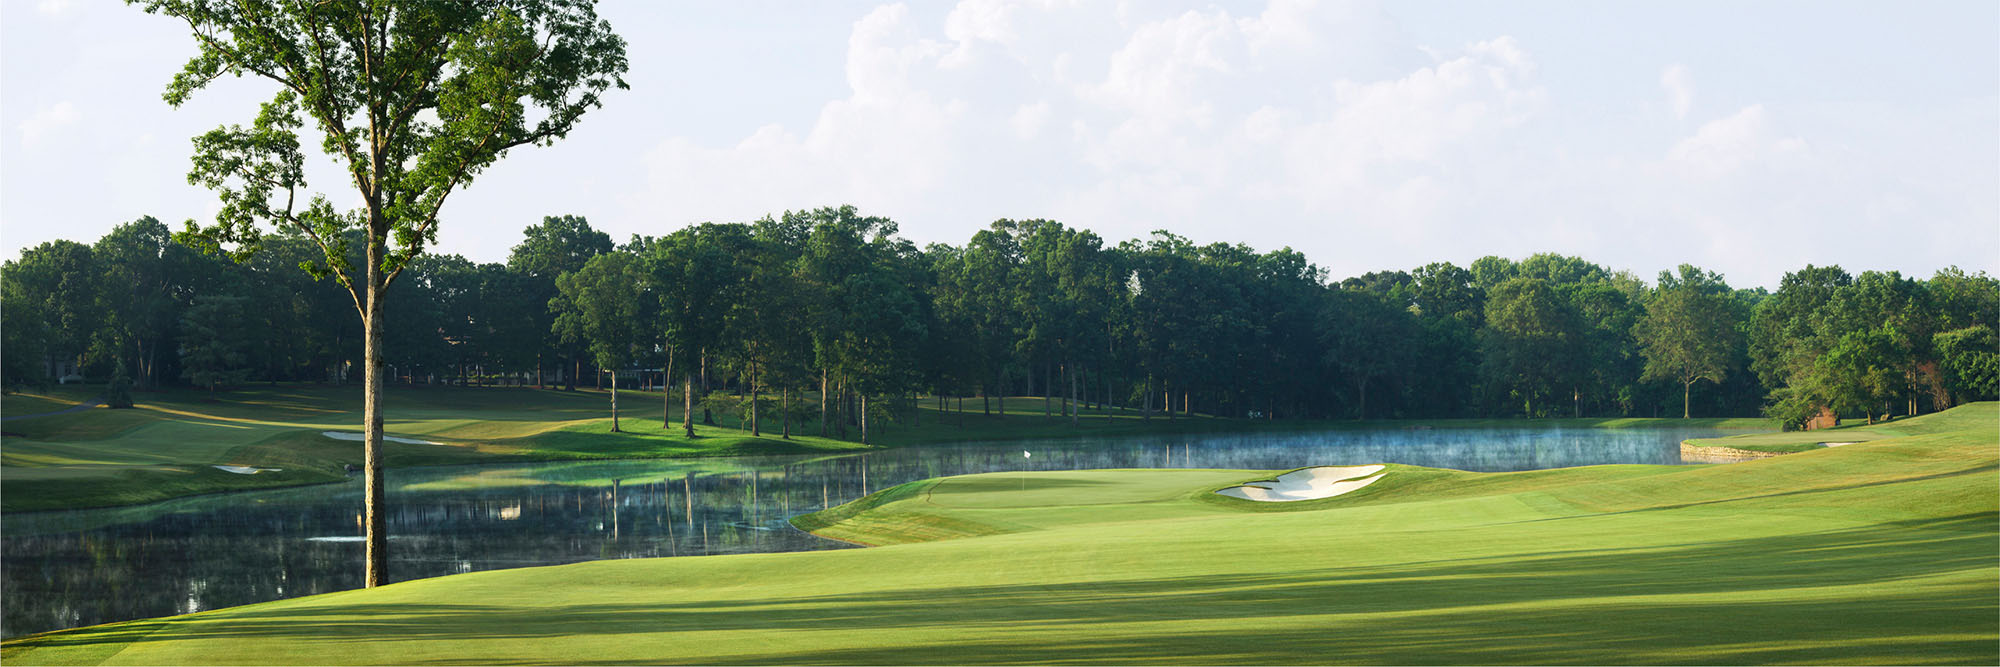 Golf Course Image - Quail Hollow No. 16